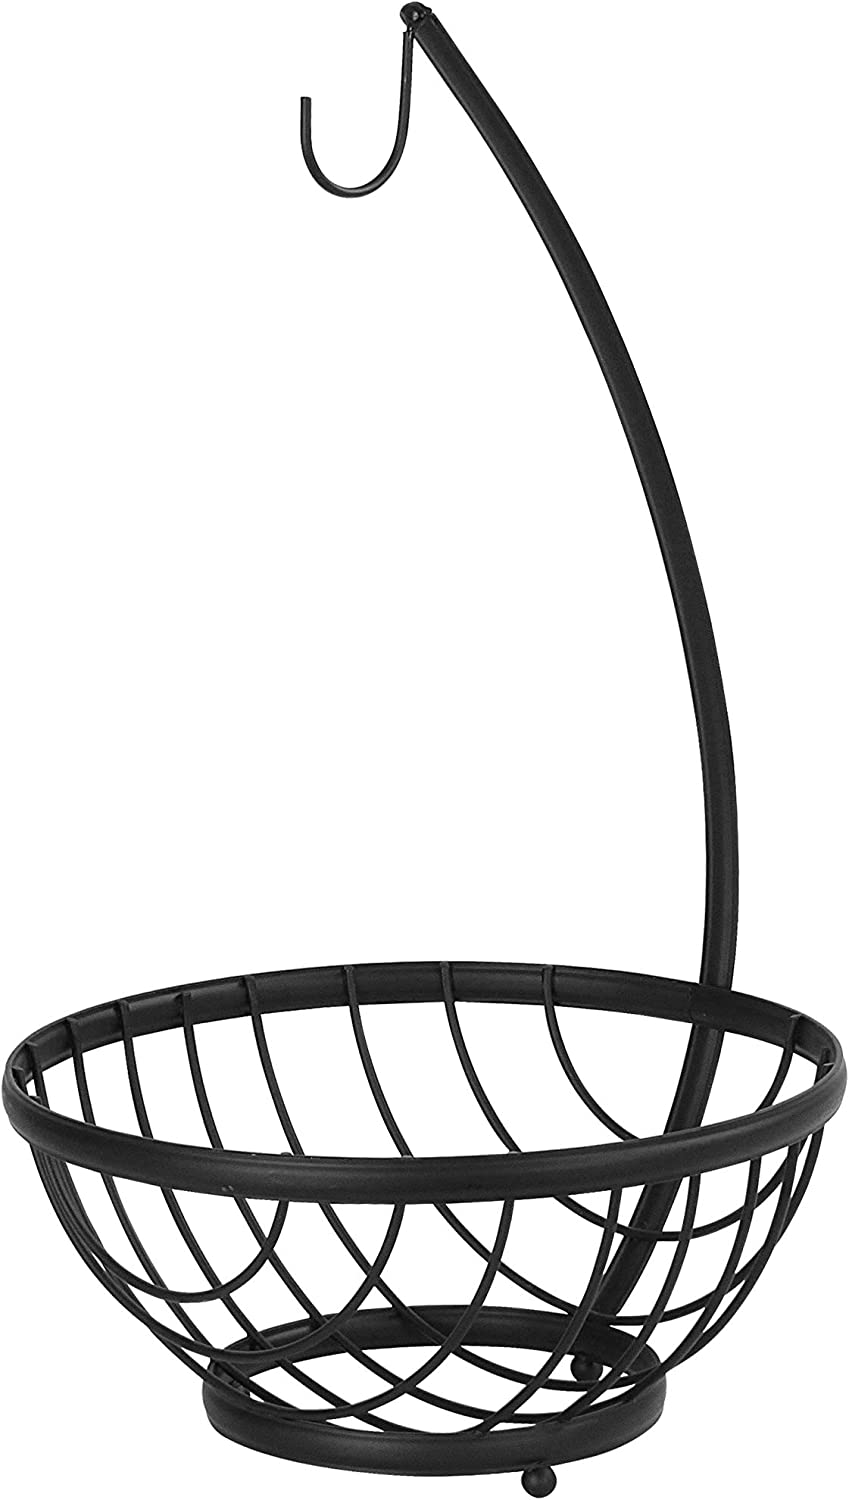 Spectrum Diversified Ashley Small Tree & Basket Hanger & Small Basket, Produce Saver Banana Holder & Open Wire Fruit Bowl for Kitchen Counter & Dining Table, Black